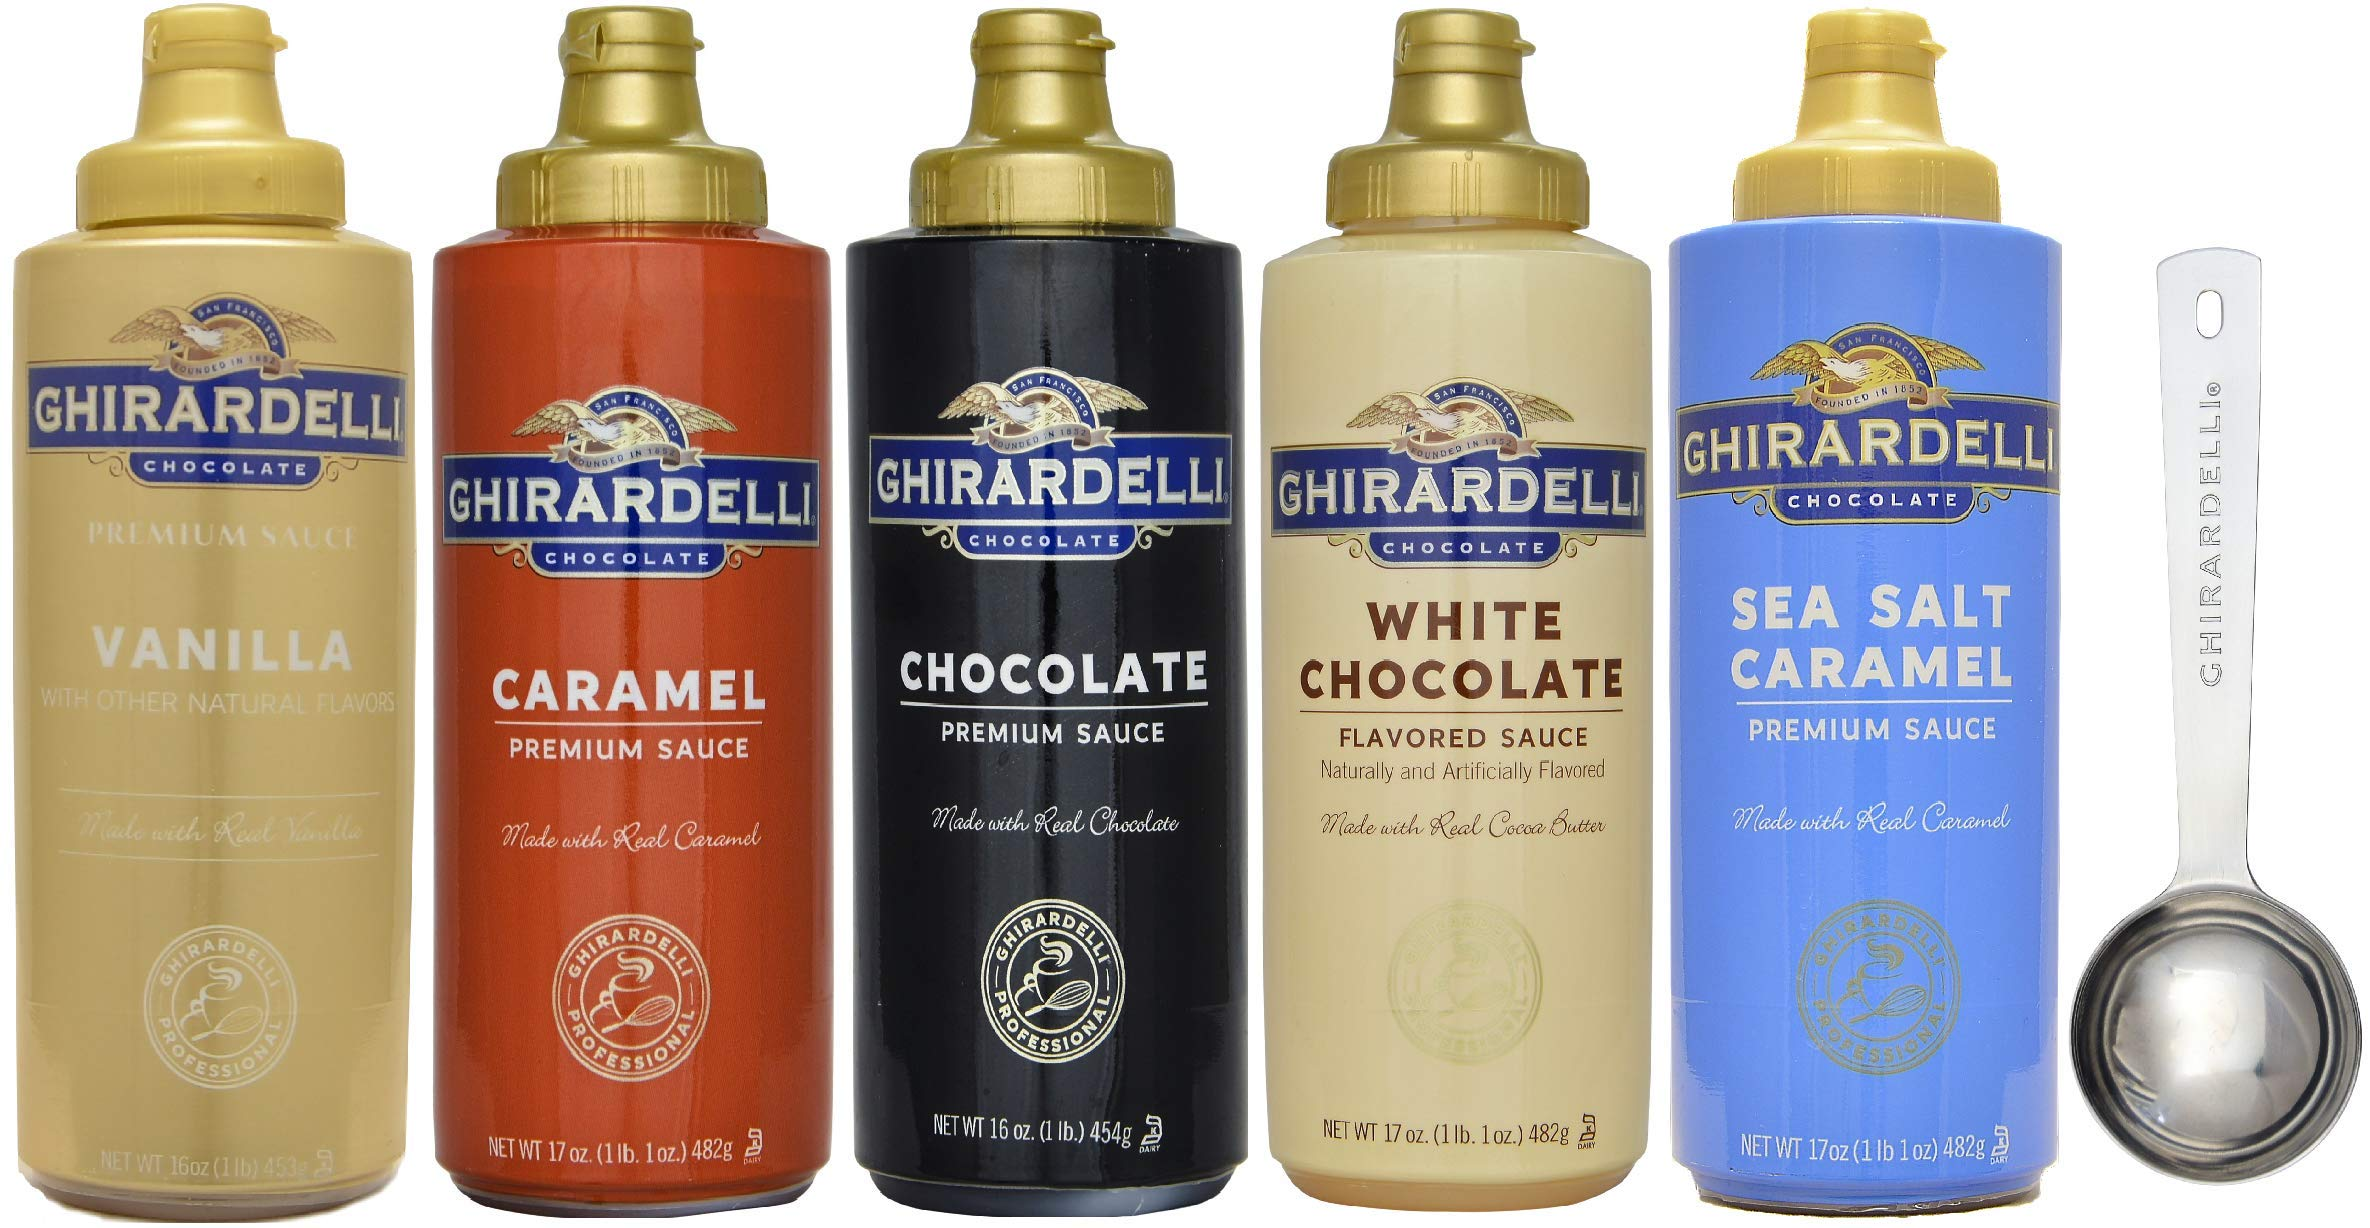 Ghirardelli - 16 Ounce Black Label, 16 Ounce Vanilla, 17 Ounce White, 17 Ounce Caramel, 17 Ounce Sea Salt Caramel Flavored Sauce (Set of 5) - with Limited Edition Measuring Spoon